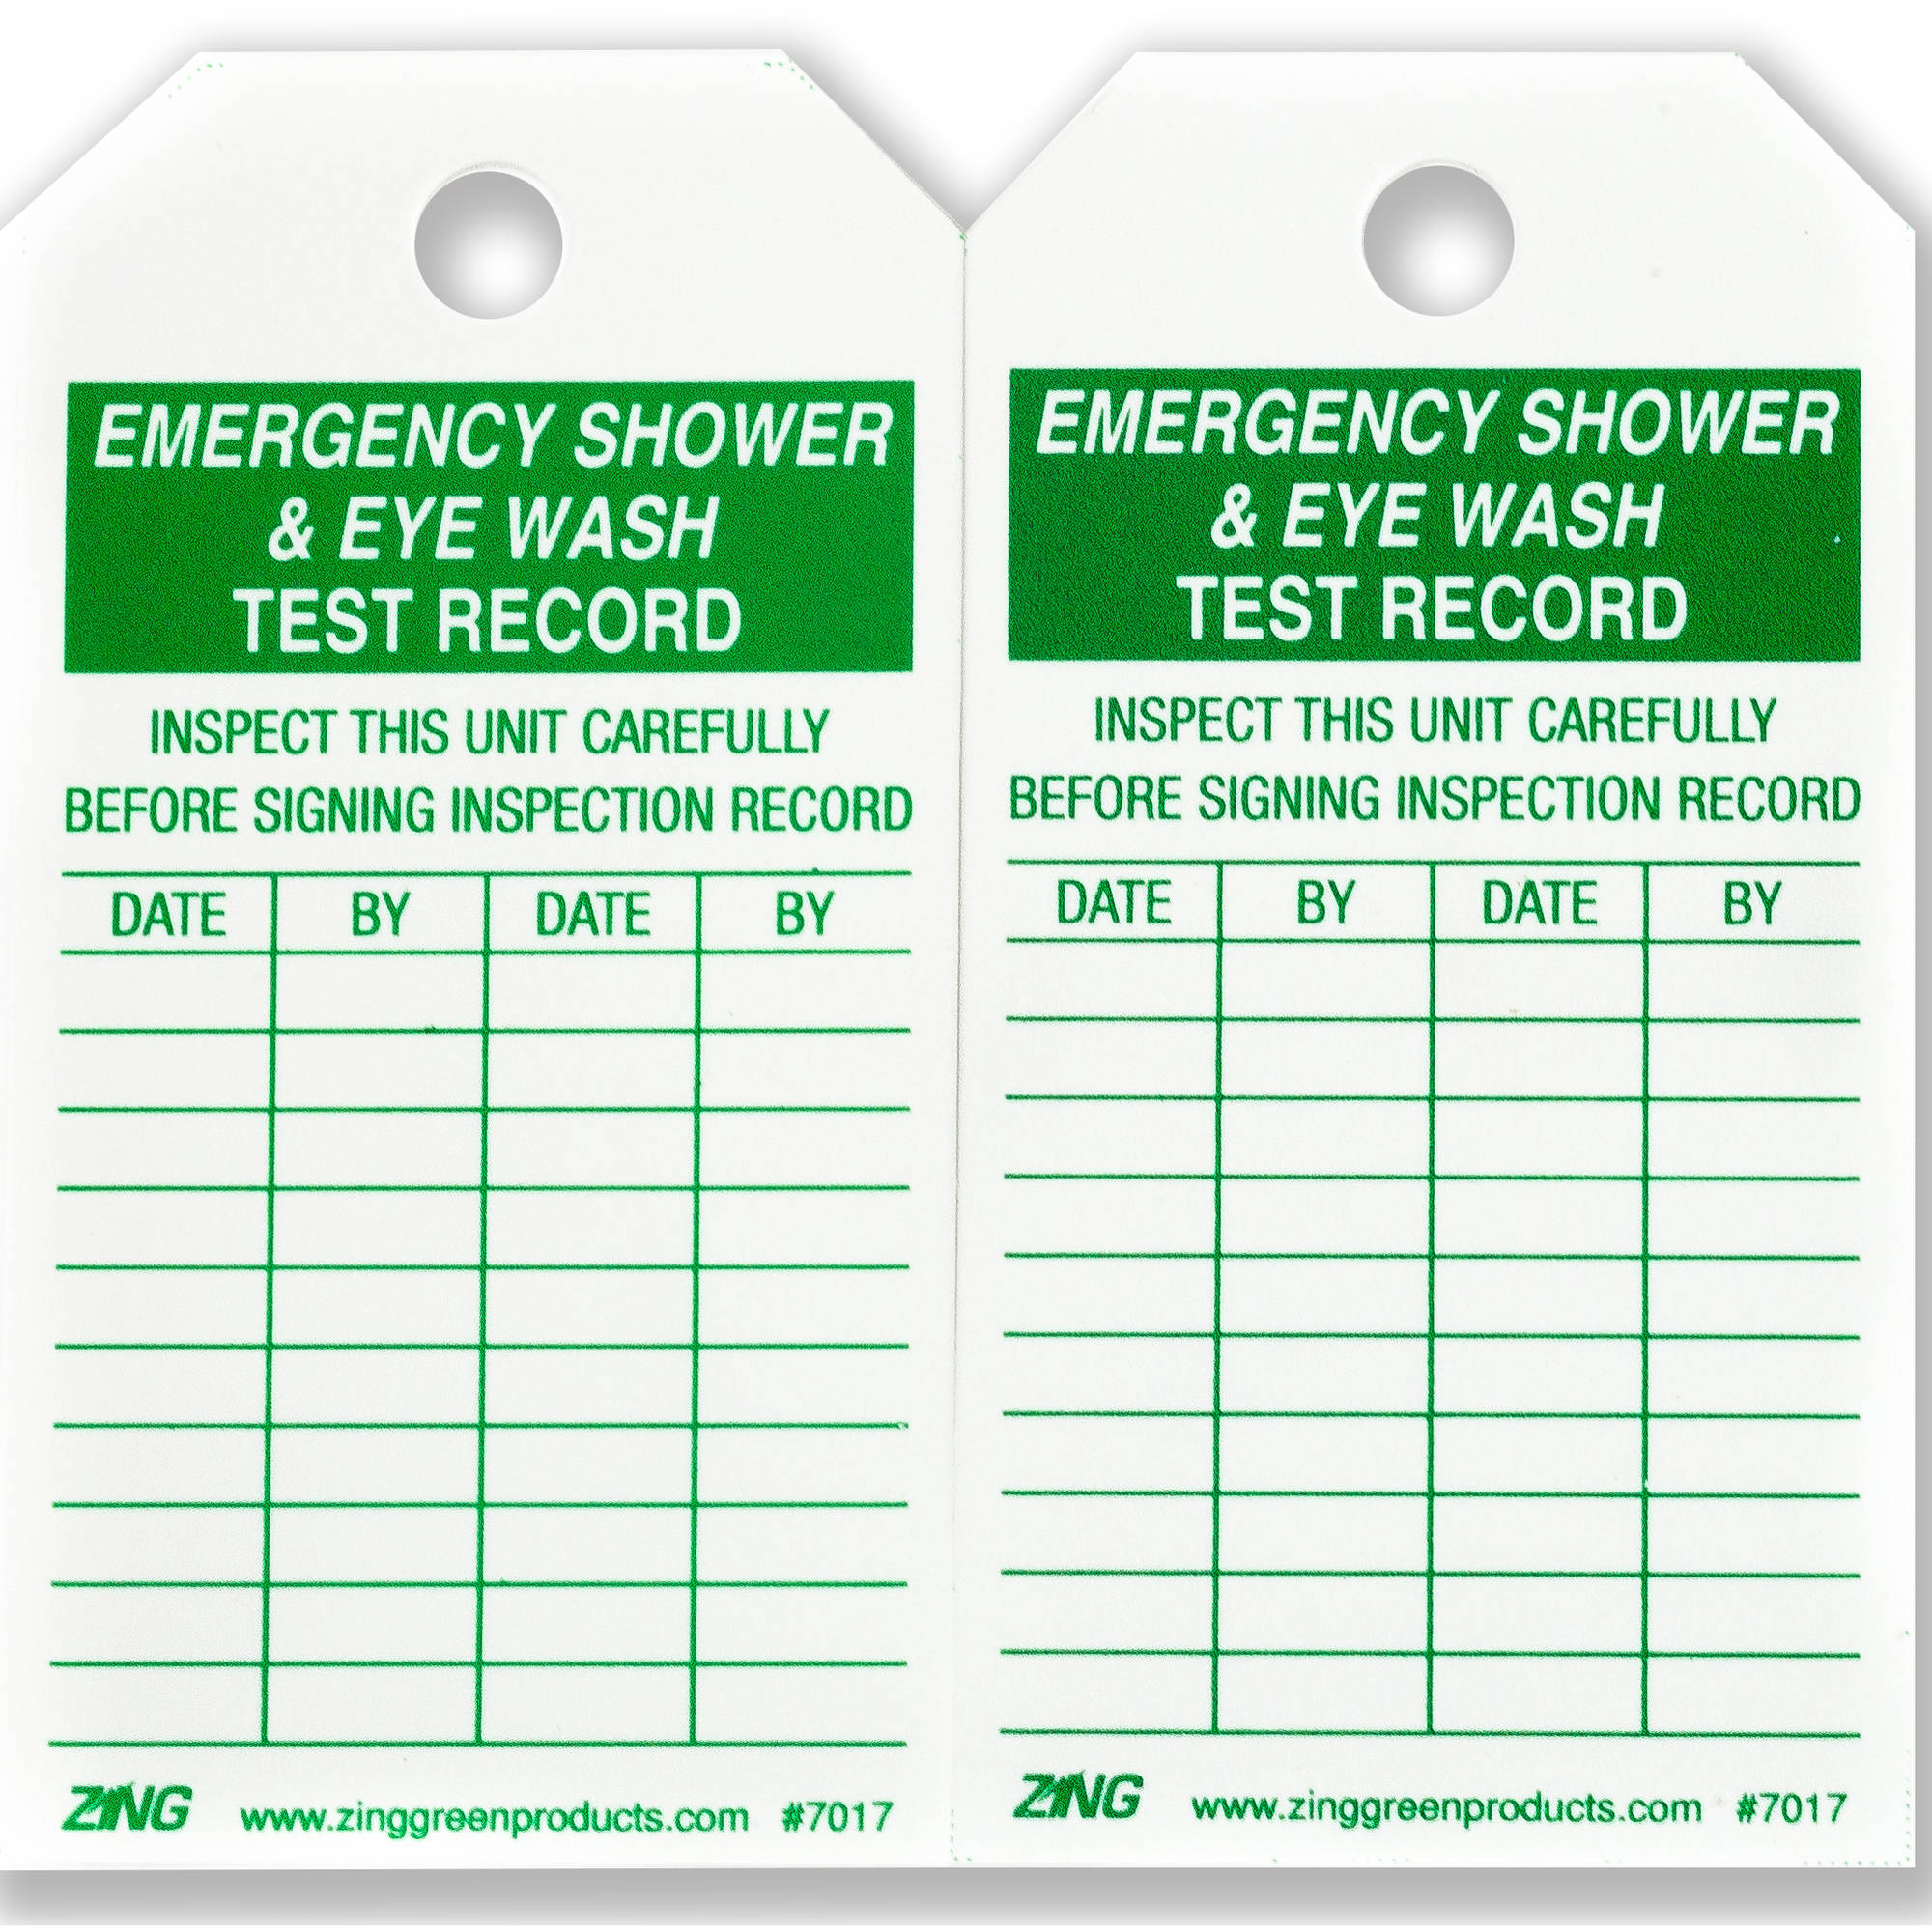 ZING Eco Safety Tag, Emergency Eyewash and Shower Inspection, 5.75Hx3W, 10-Pack